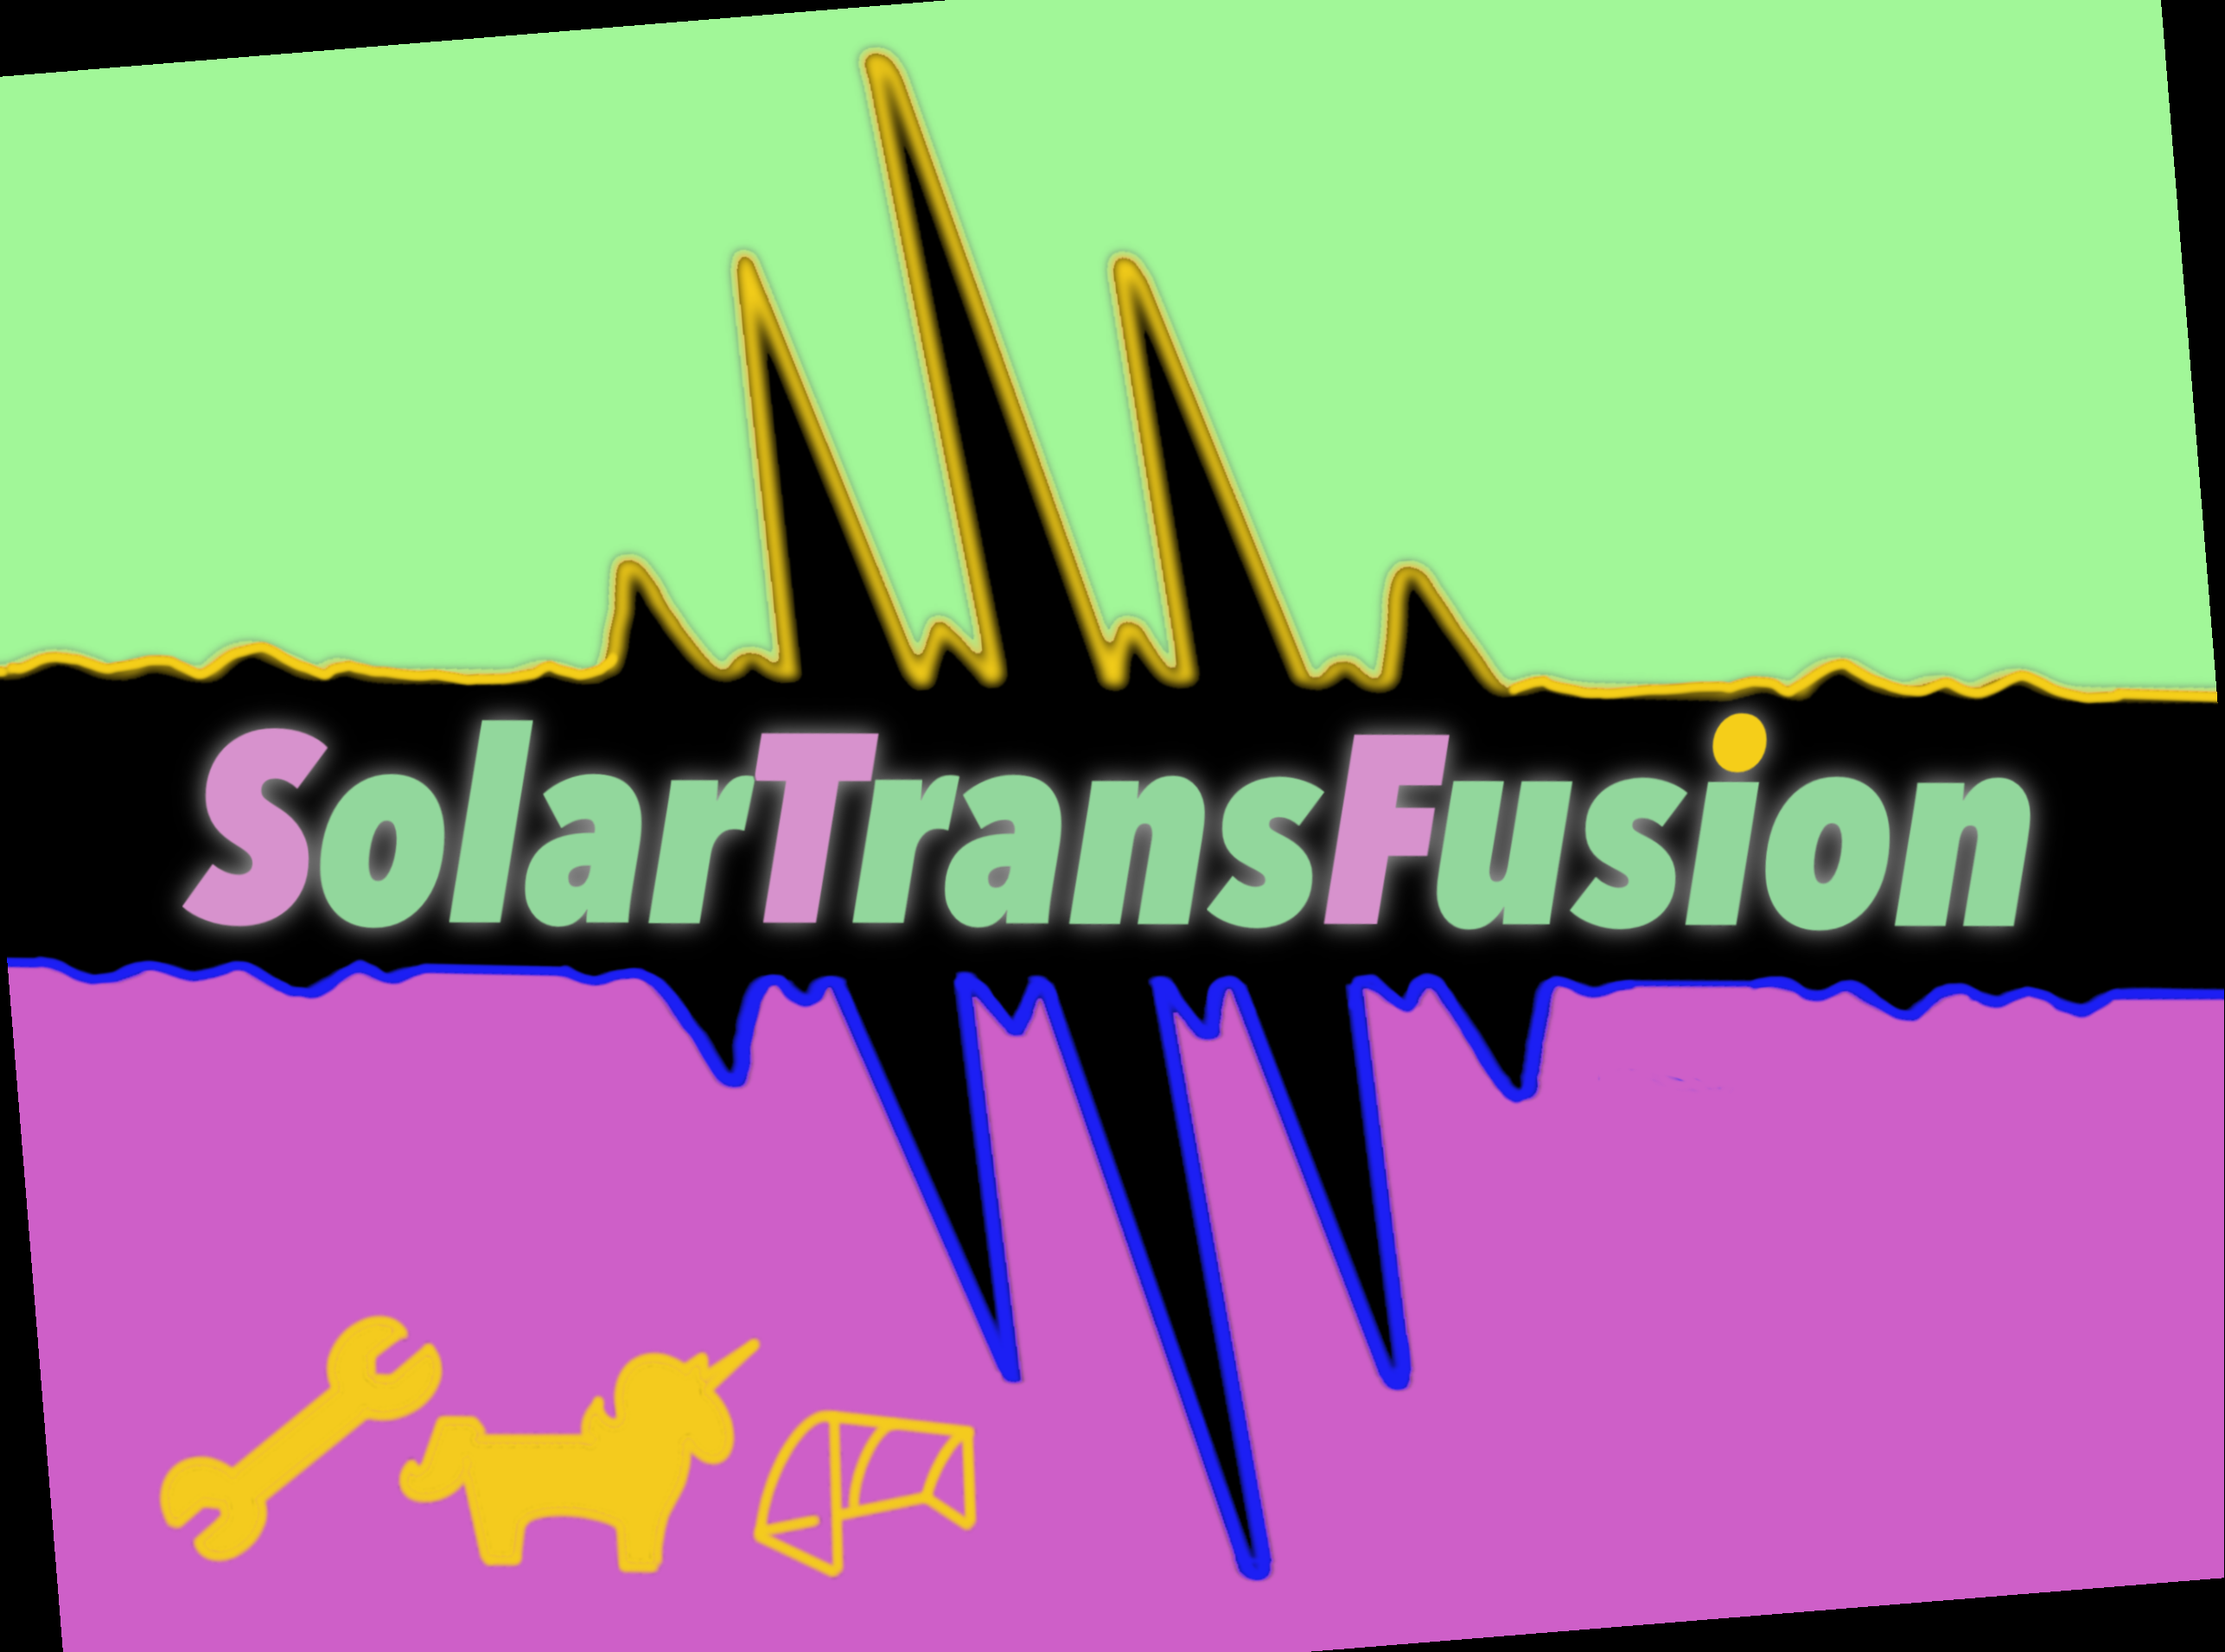 New Podcast SolarTransfusion by Dr. Frey Brownson